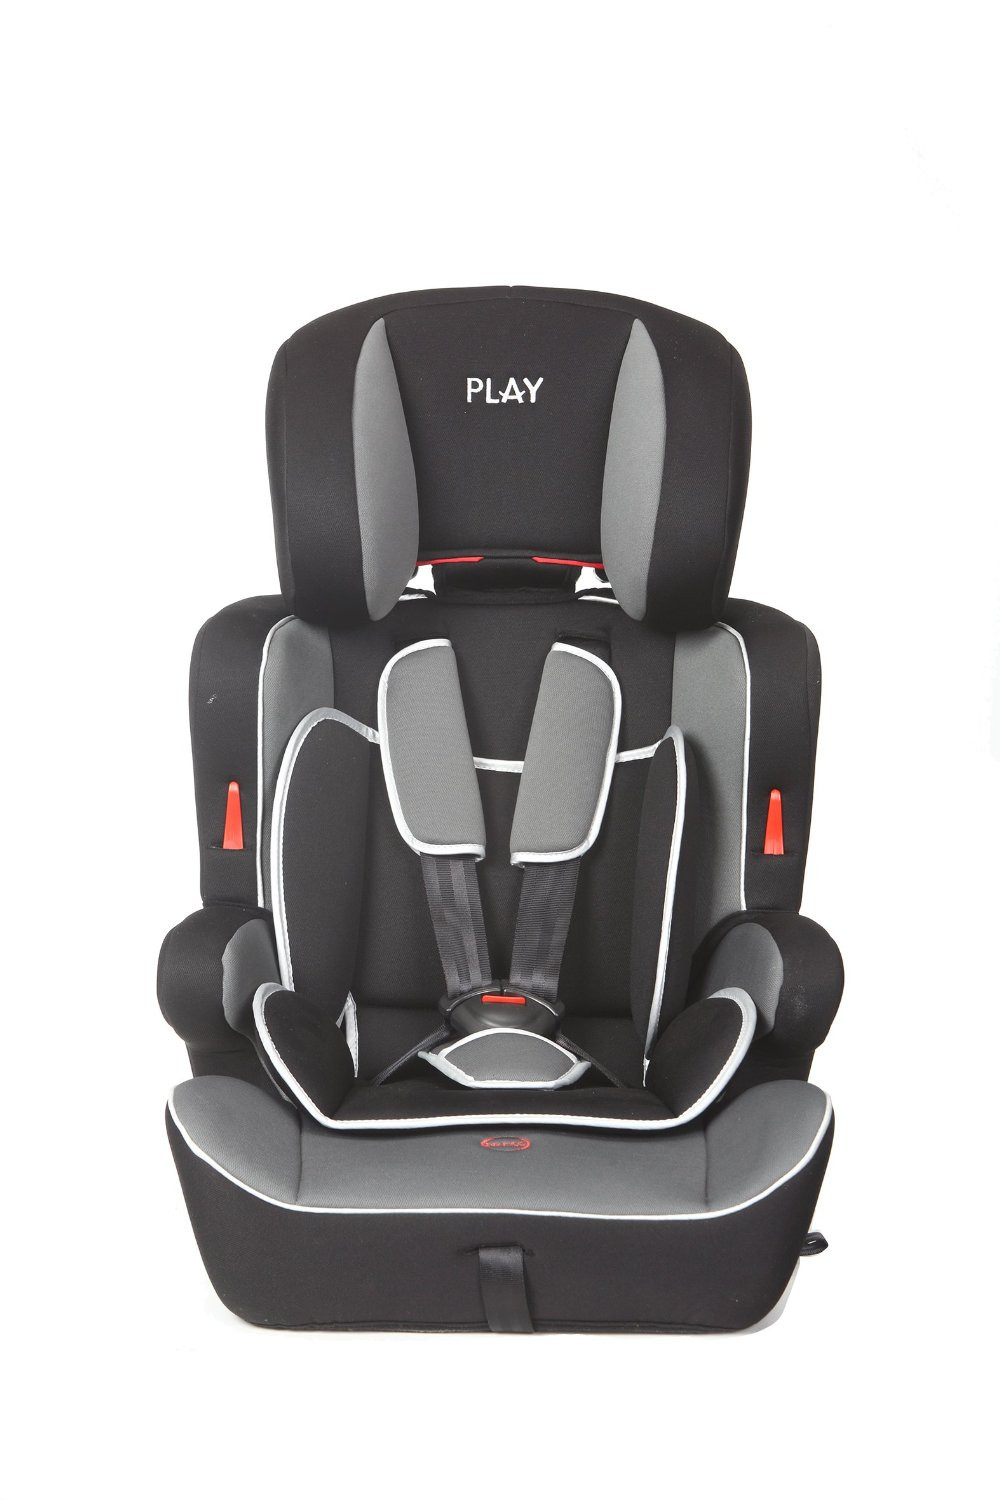 Silla de coche play safe ten grupo 1 2 3 casualplay for Silla coche grupo 2